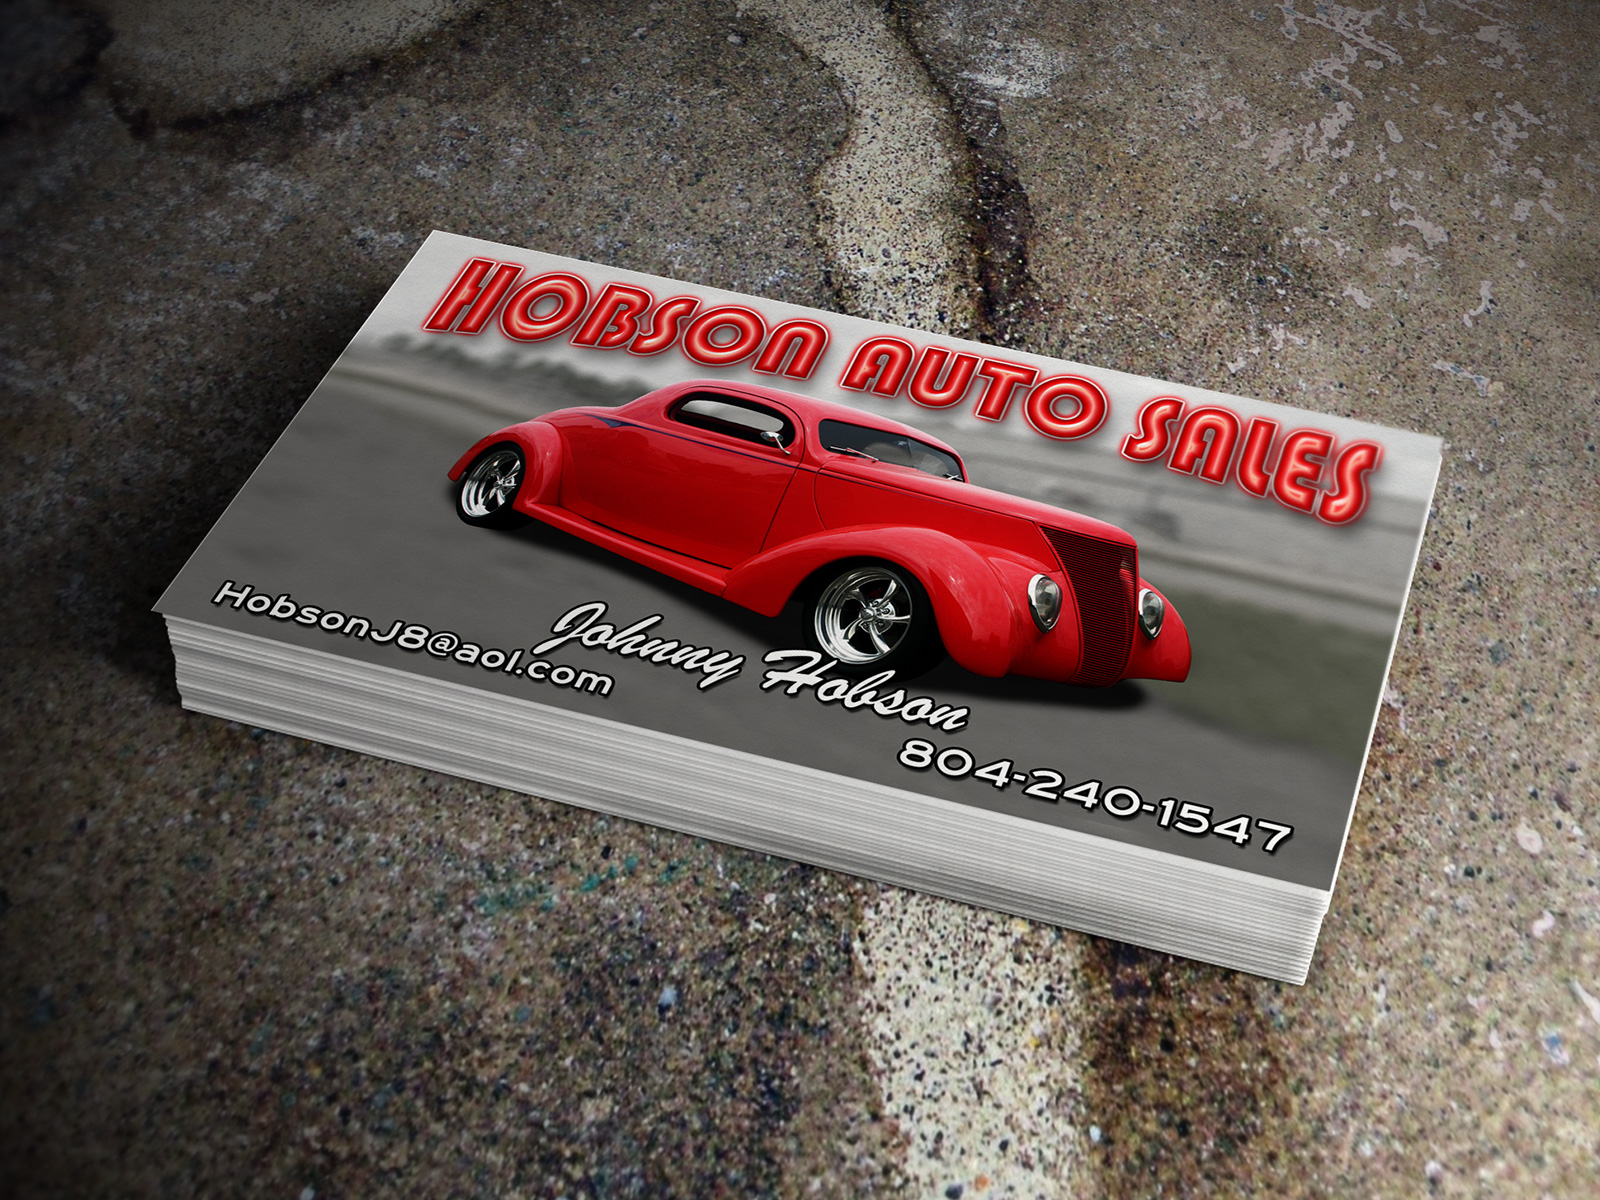 Hobson auto sales business cards logo advantage hobson auto sales business cards colourmoves